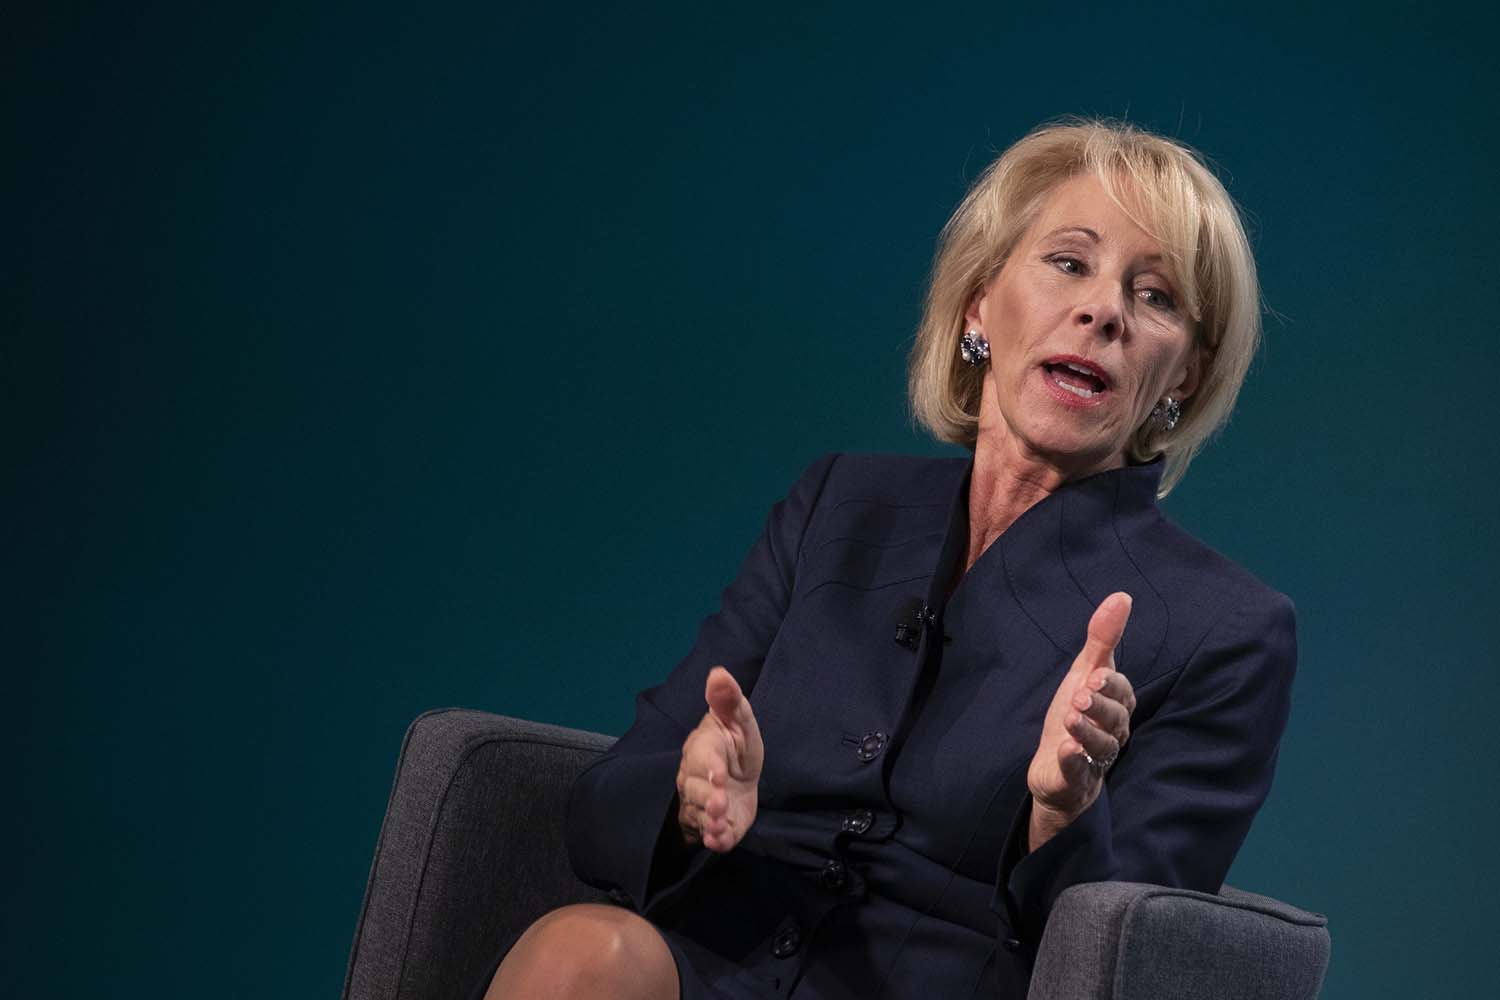 Betsy DeVos, secretary of education, speaks during the Wall Street Journal CFO Network conference in Washington, D.C., on Tuesday, June 11.